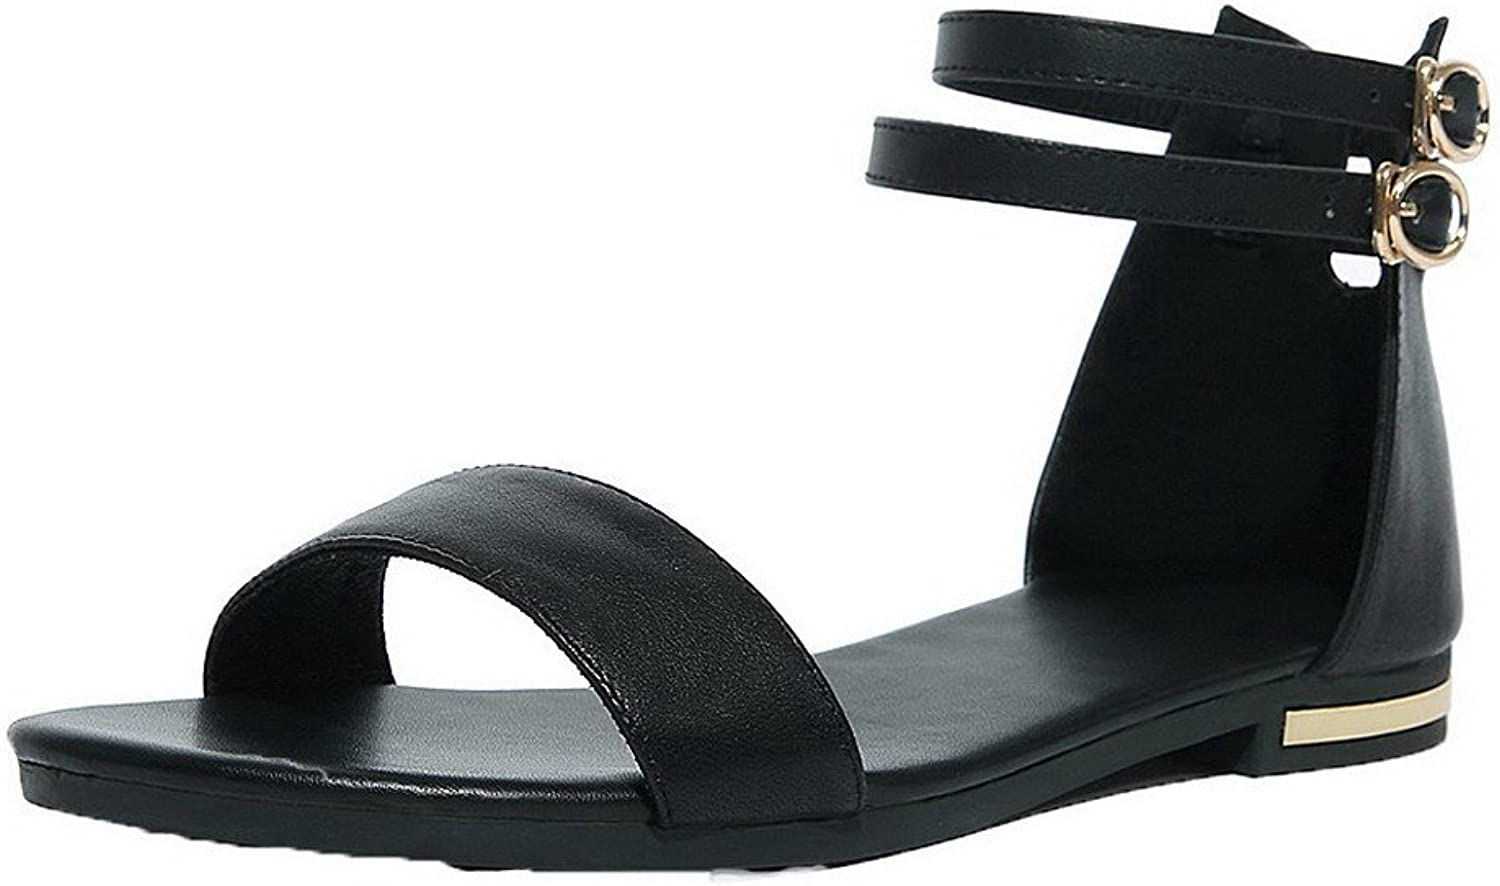 WeenFashion Women's Low-Heels Solid Buckle Pu Open Toe Sandals, CA18LA03313